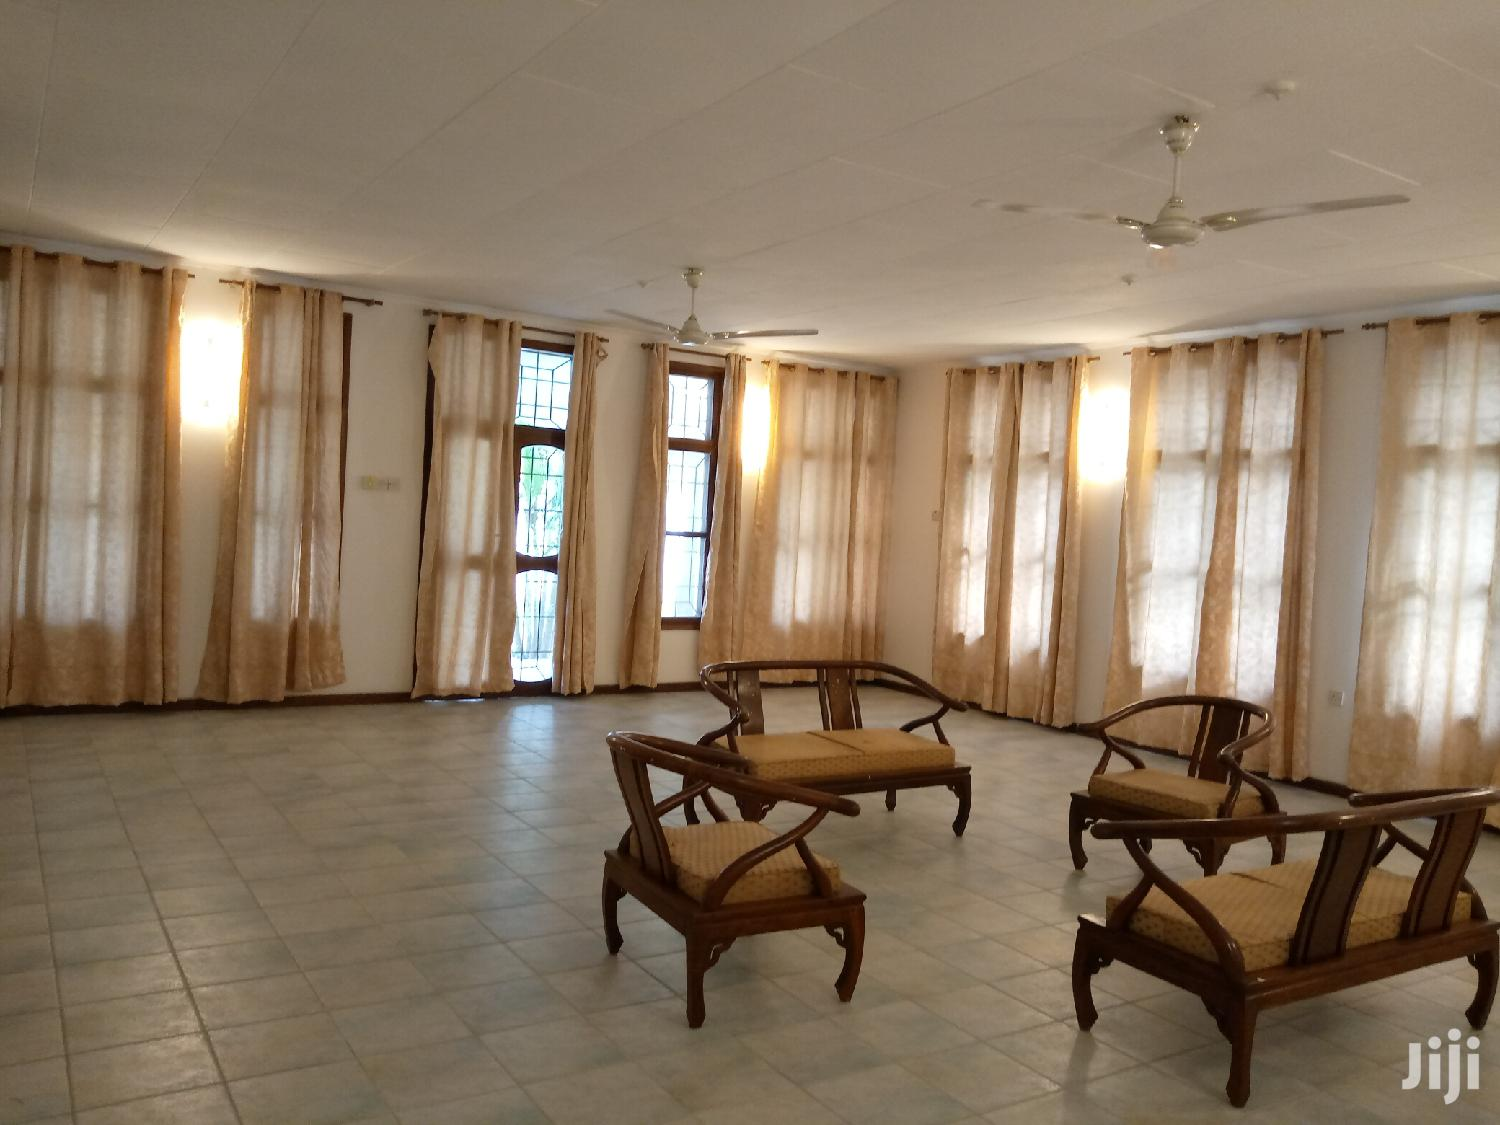 Bunglow House For Sale In Msasani Beach. | Houses & Apartments For Rent for sale in Kinondoni, Dar es Salaam, Tanzania